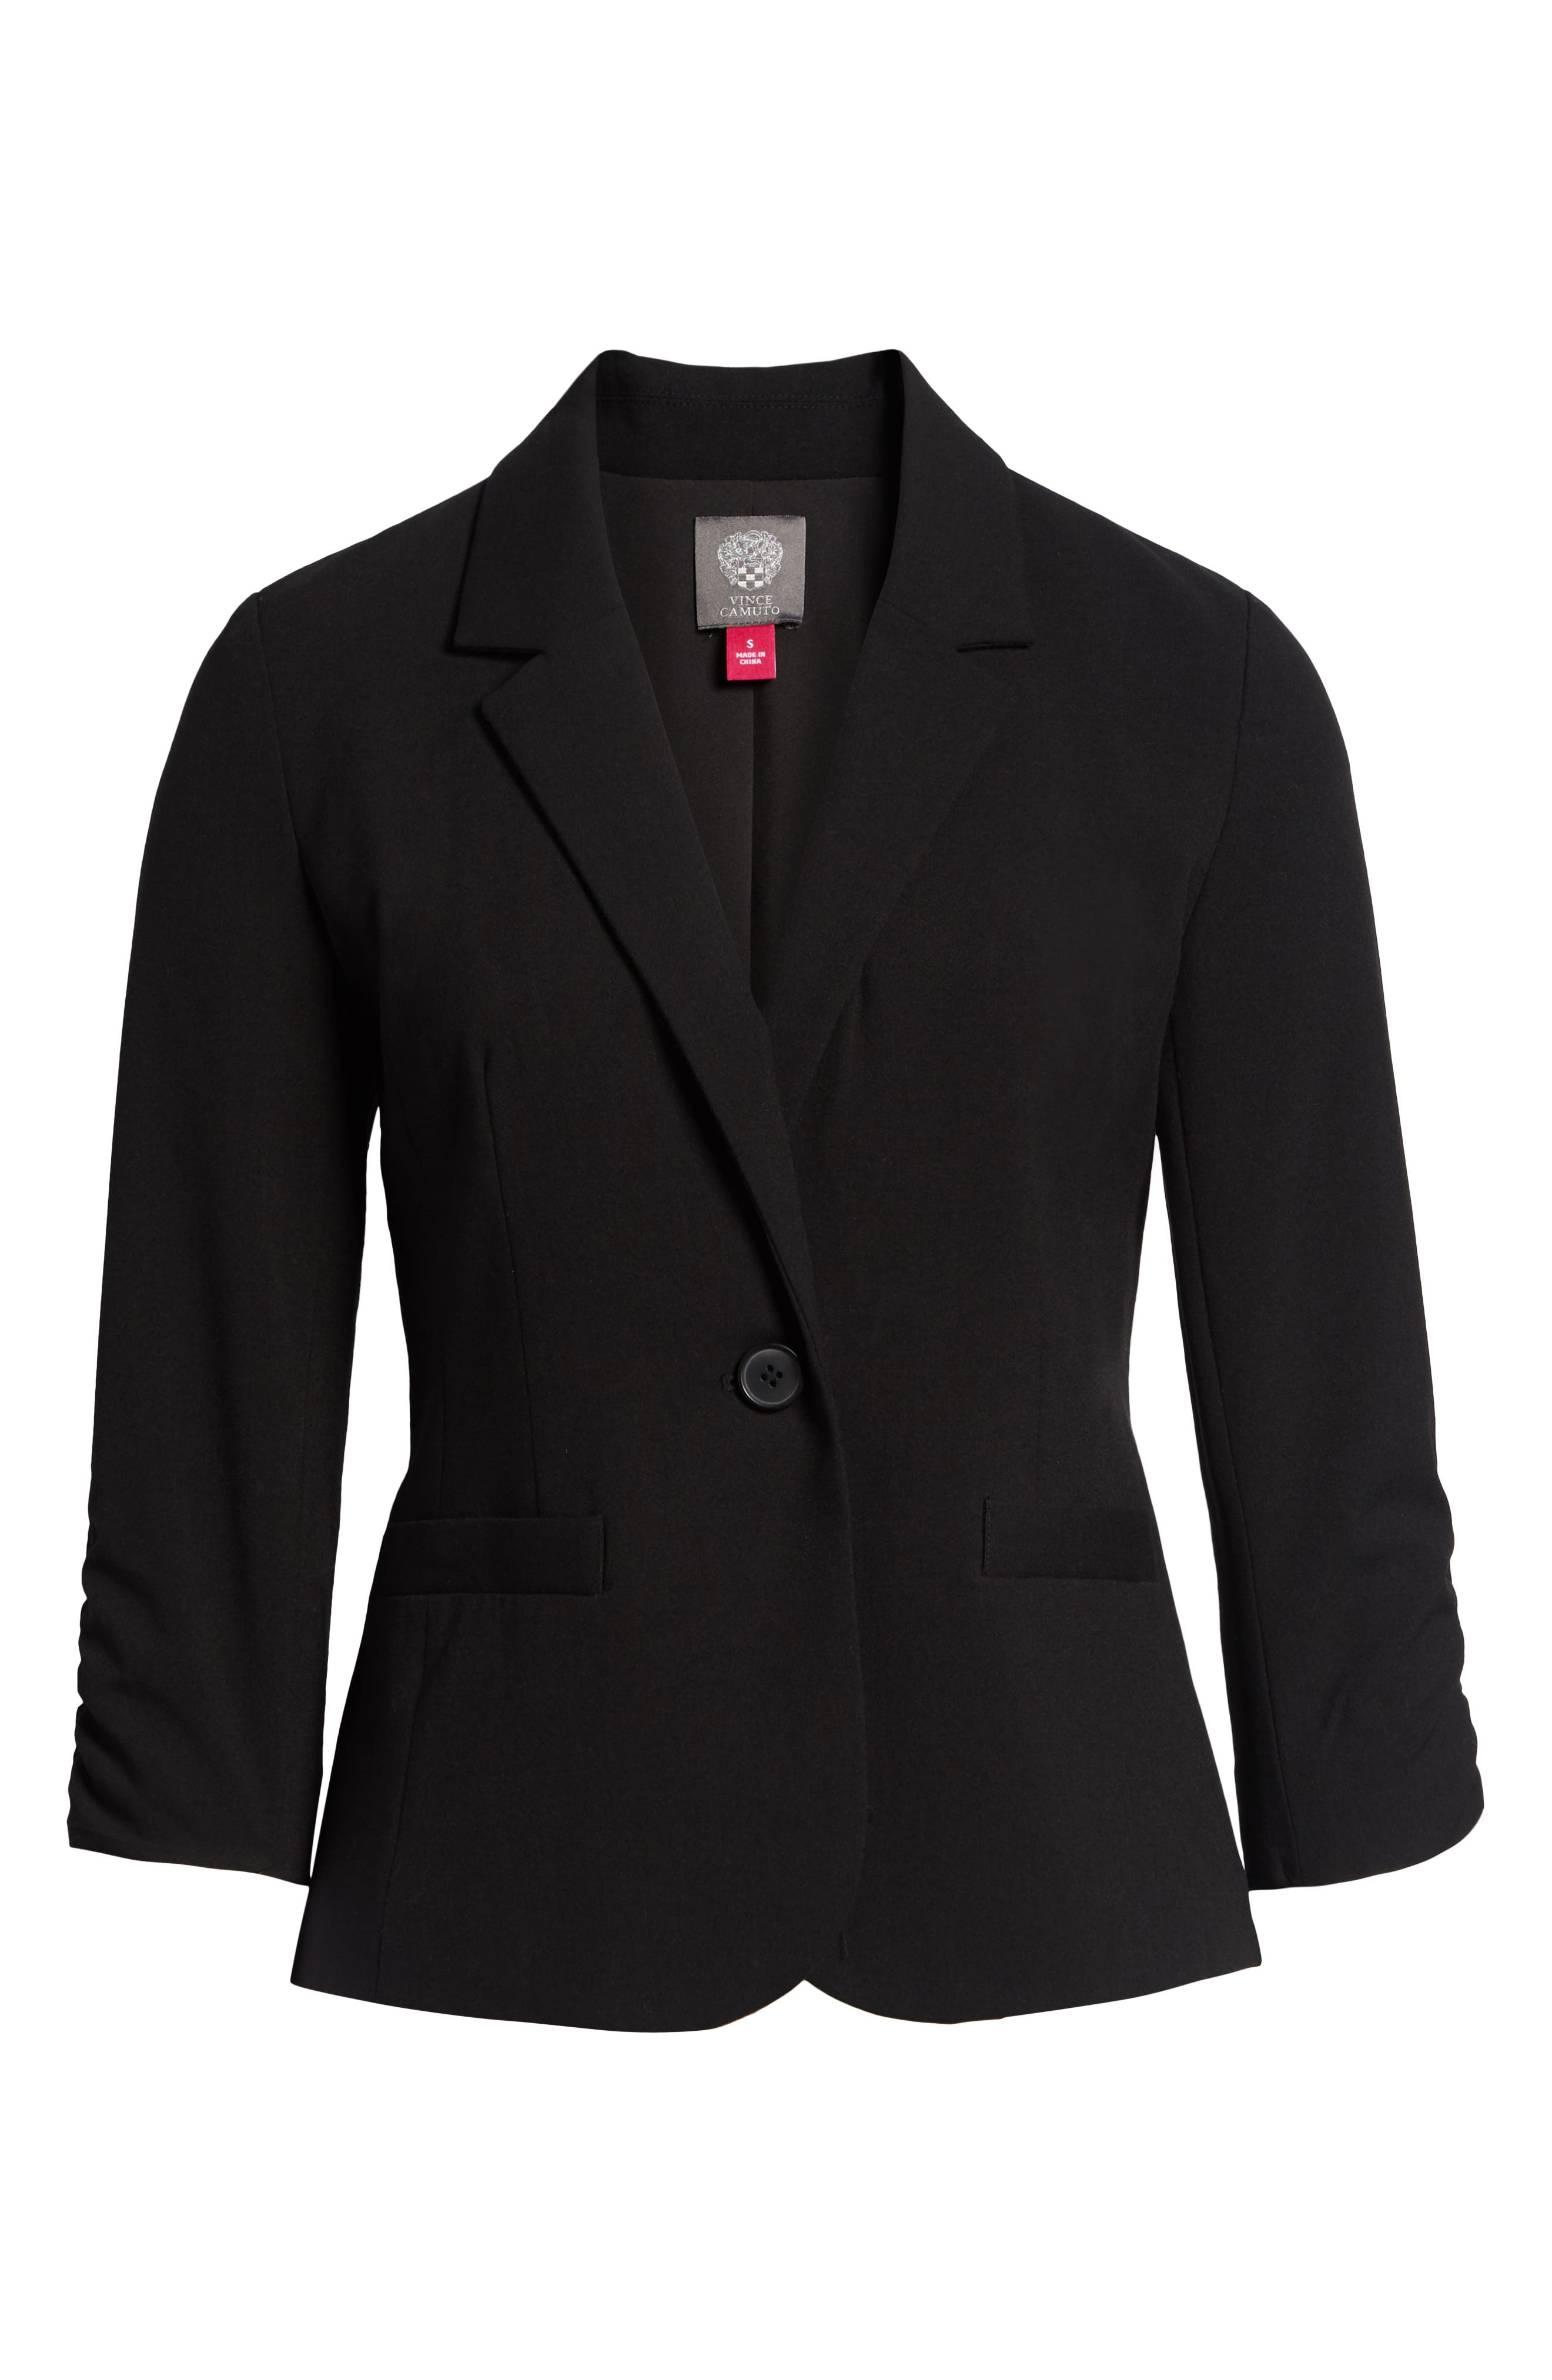 Ruched Sleeve Blazer,                             Alternate thumbnail 6, color,                             RICH BLACK